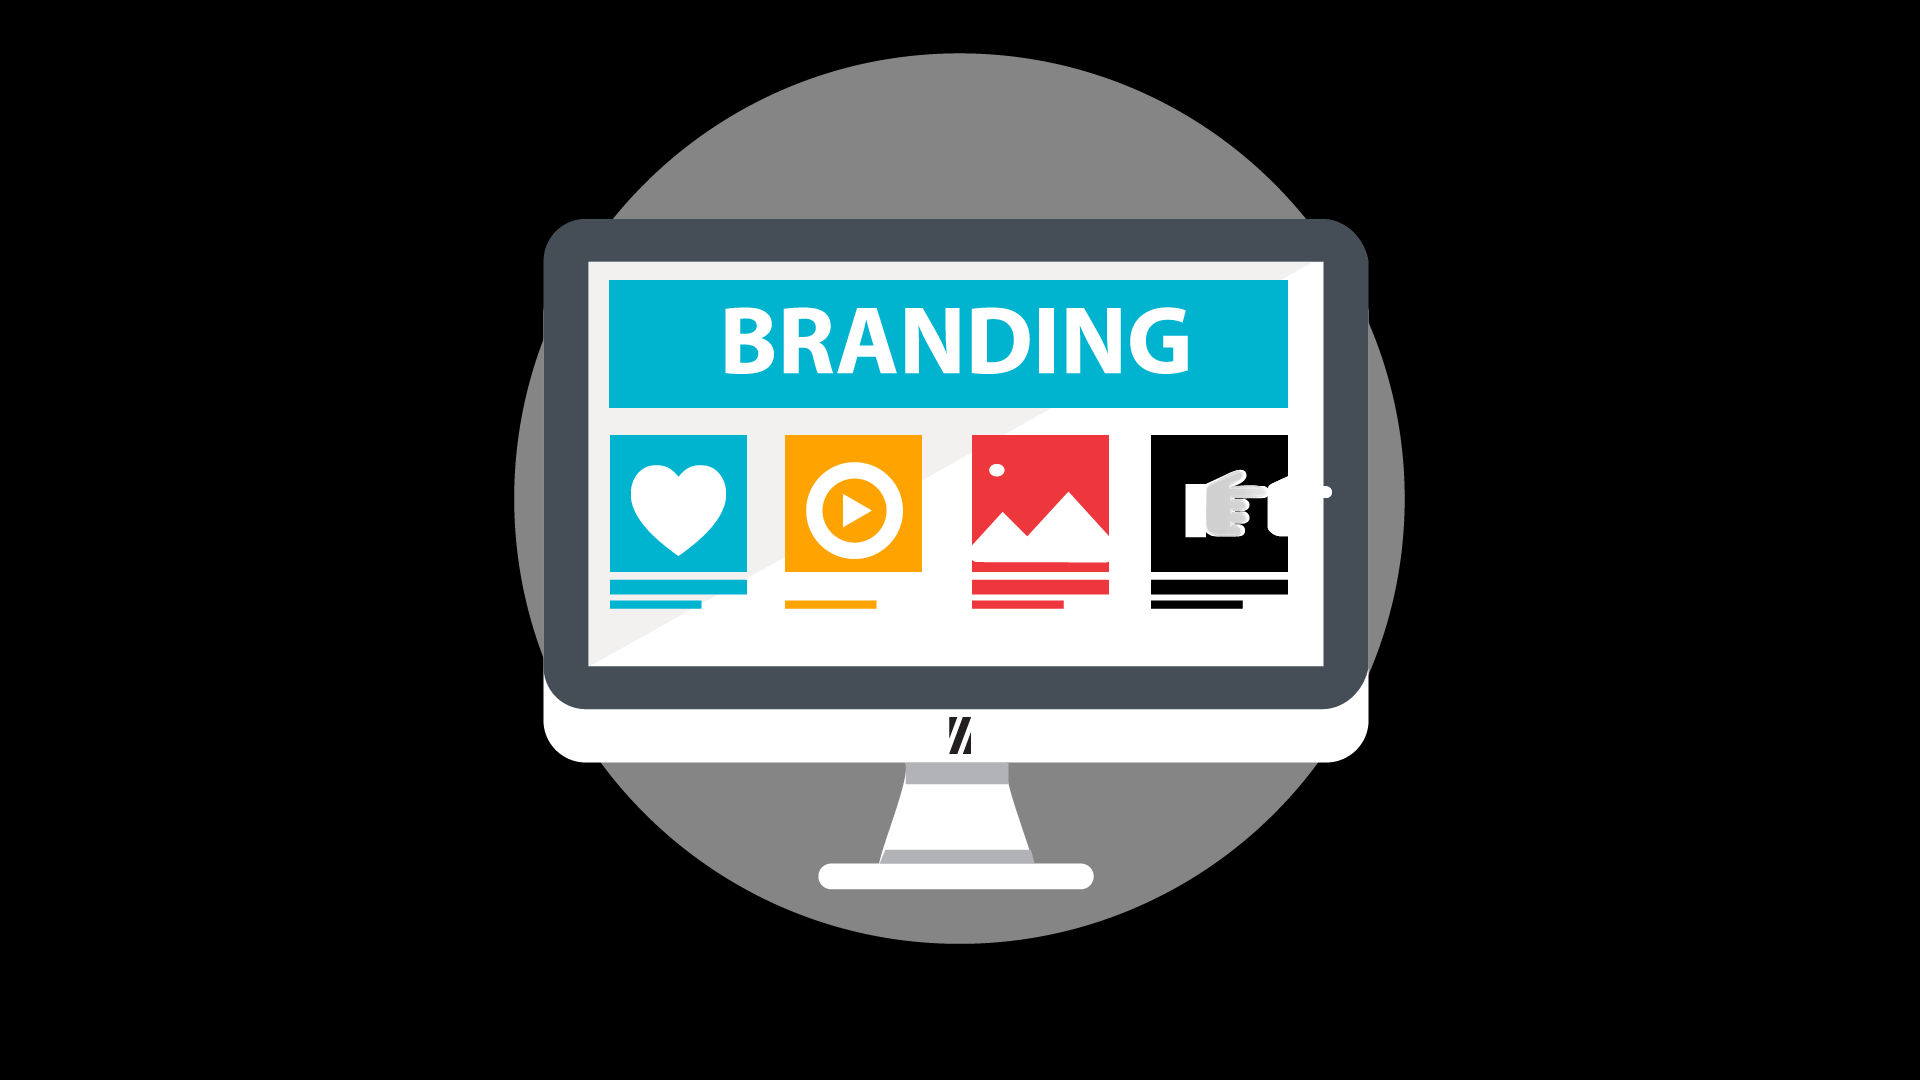 What's in a brand?